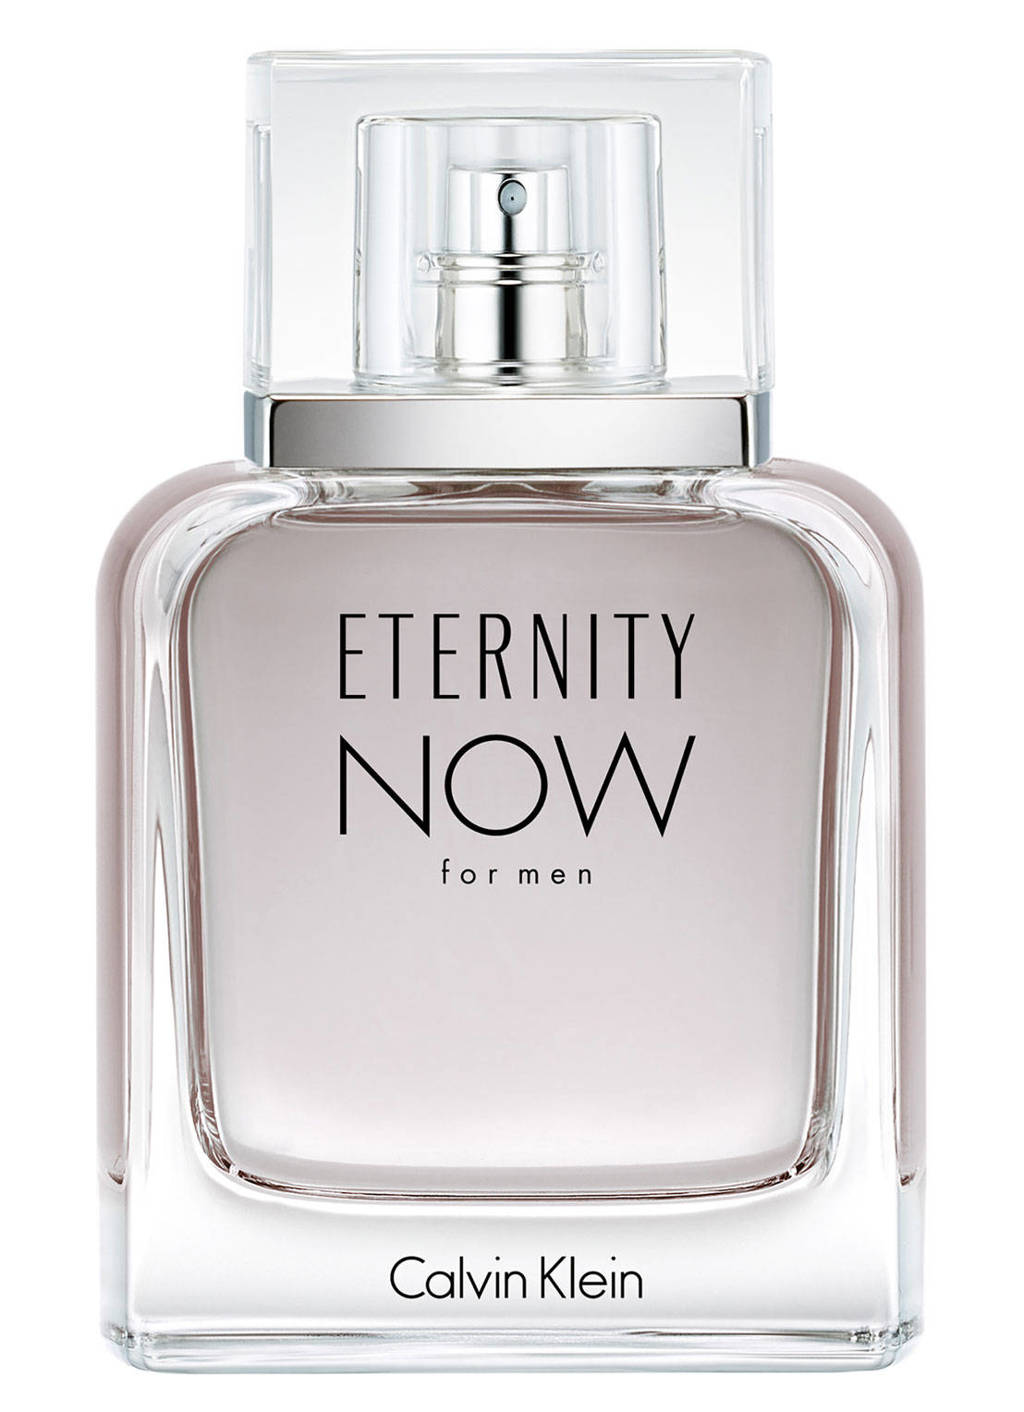 Calvin Klein Eternity Now for Men eau de toilette - 50 ml